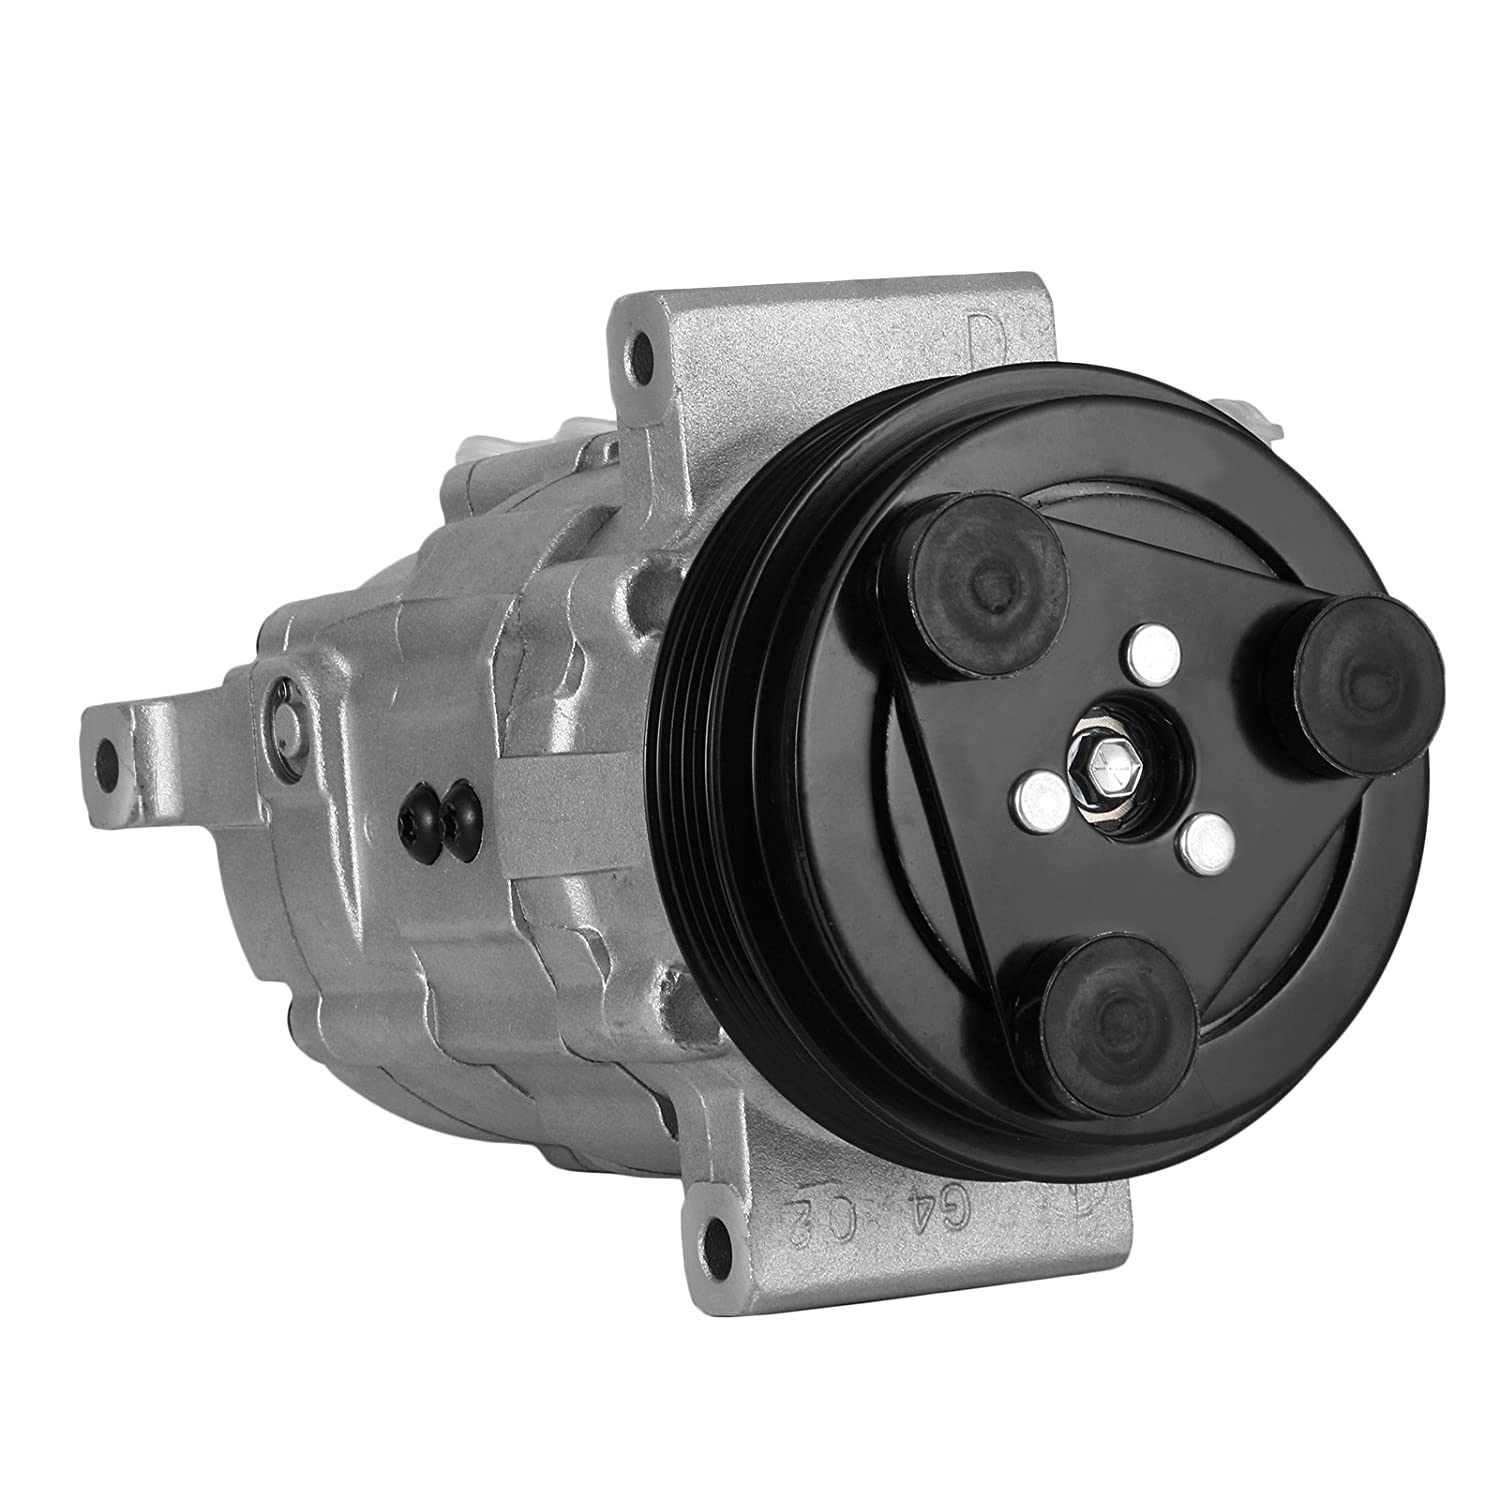 Engine Cooling & Climate Control Happybuy CO 10679JC 57543 AC ...